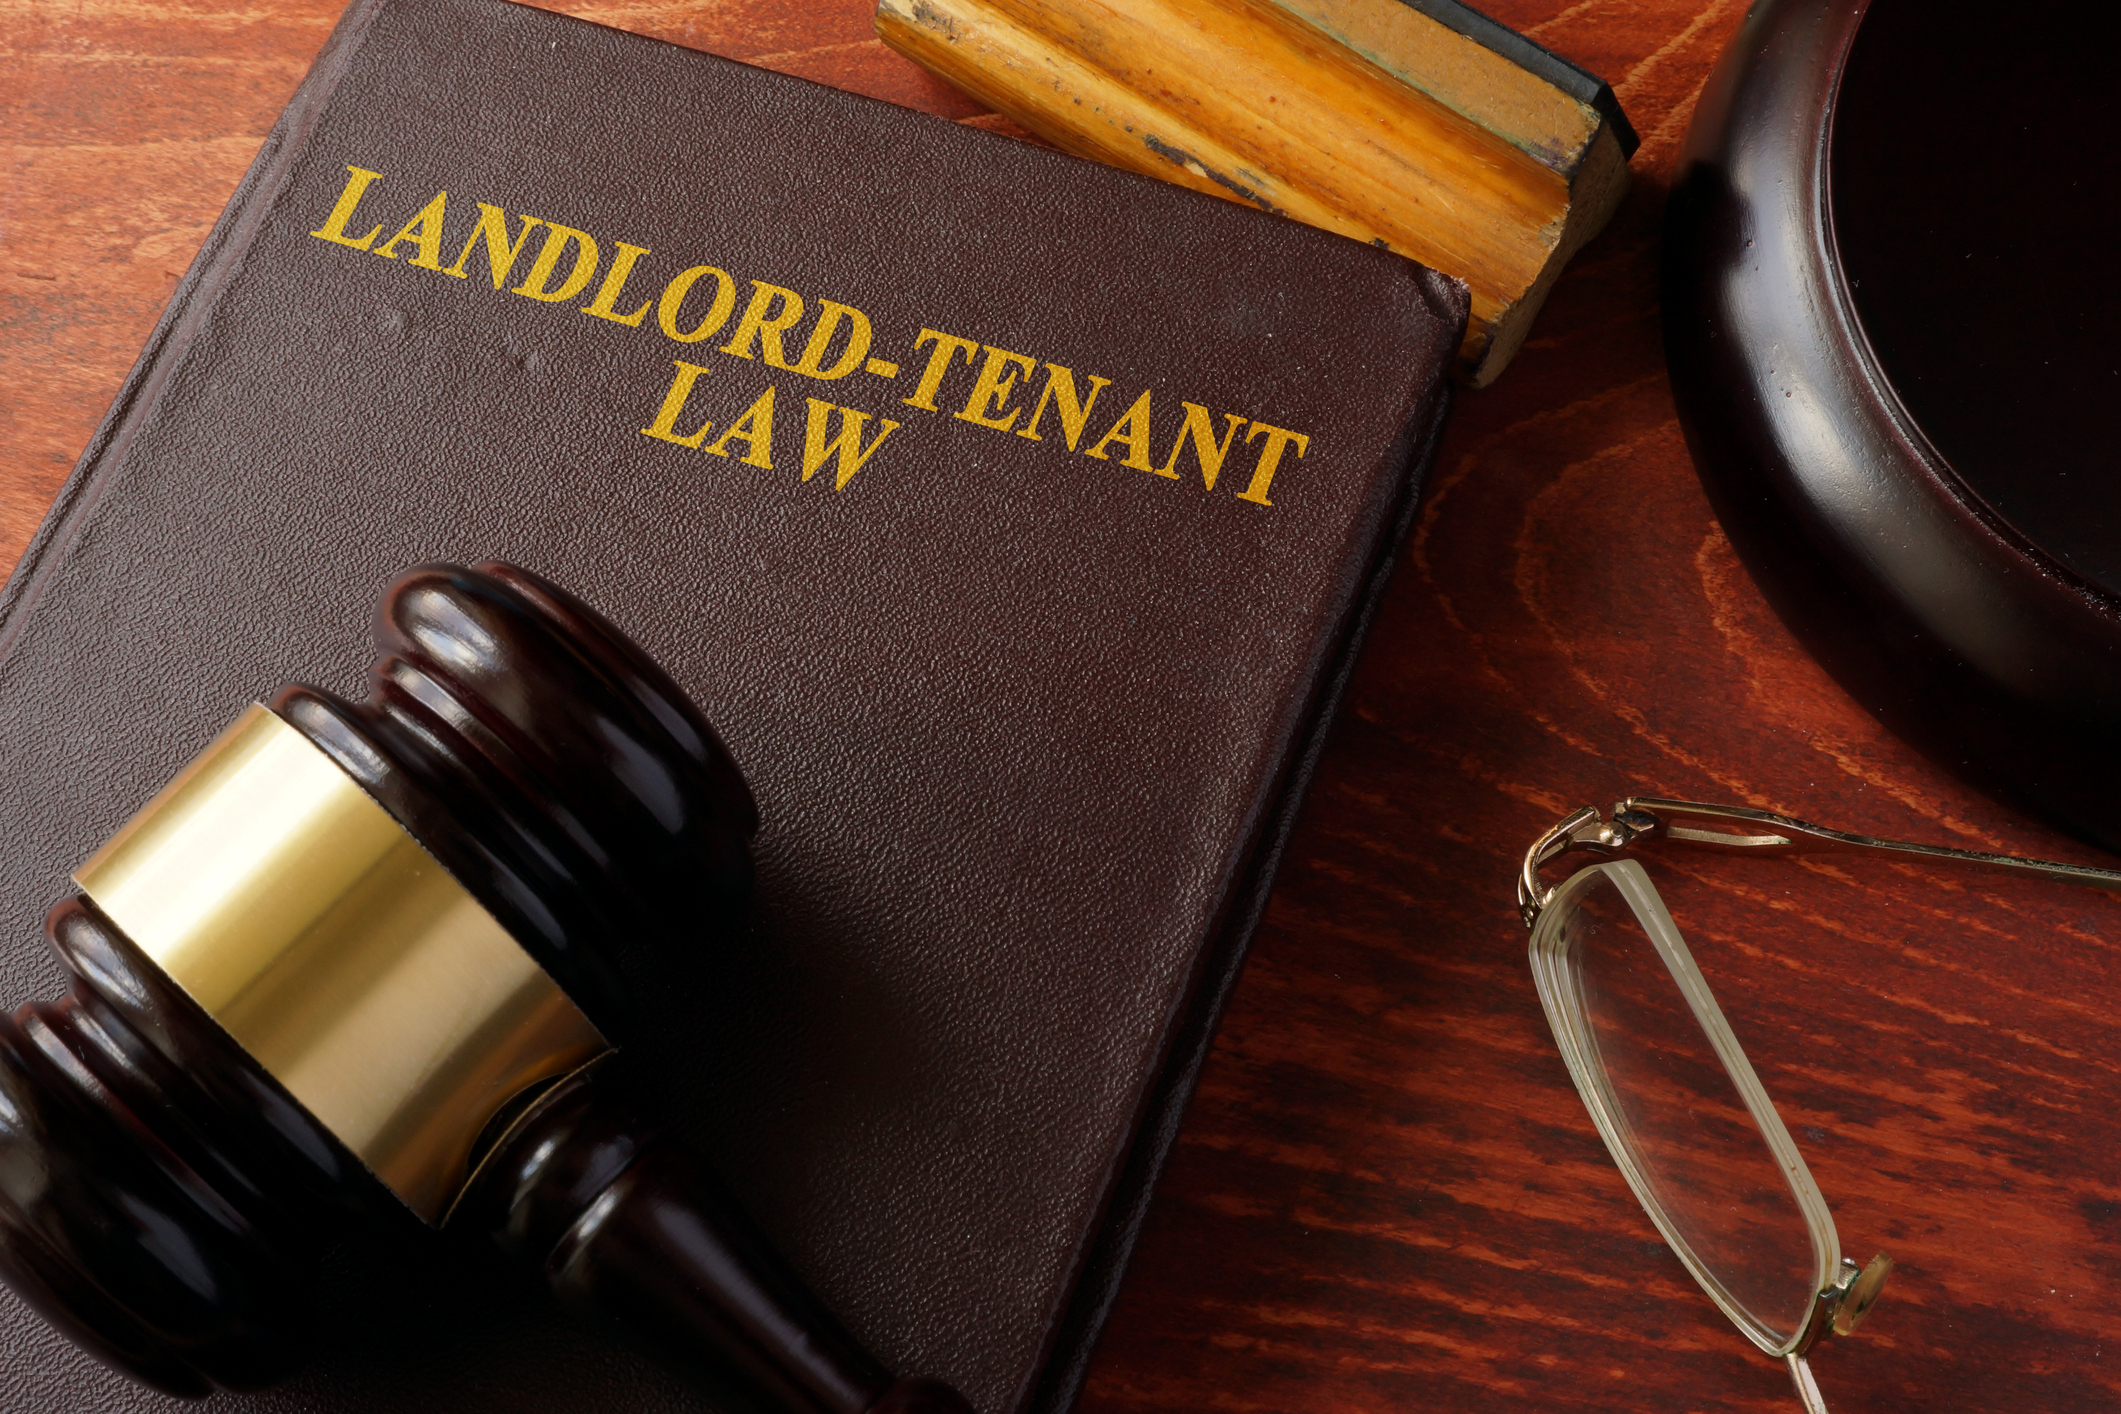 Buy an Investment Property in Phoenix Landlord Tenant Law